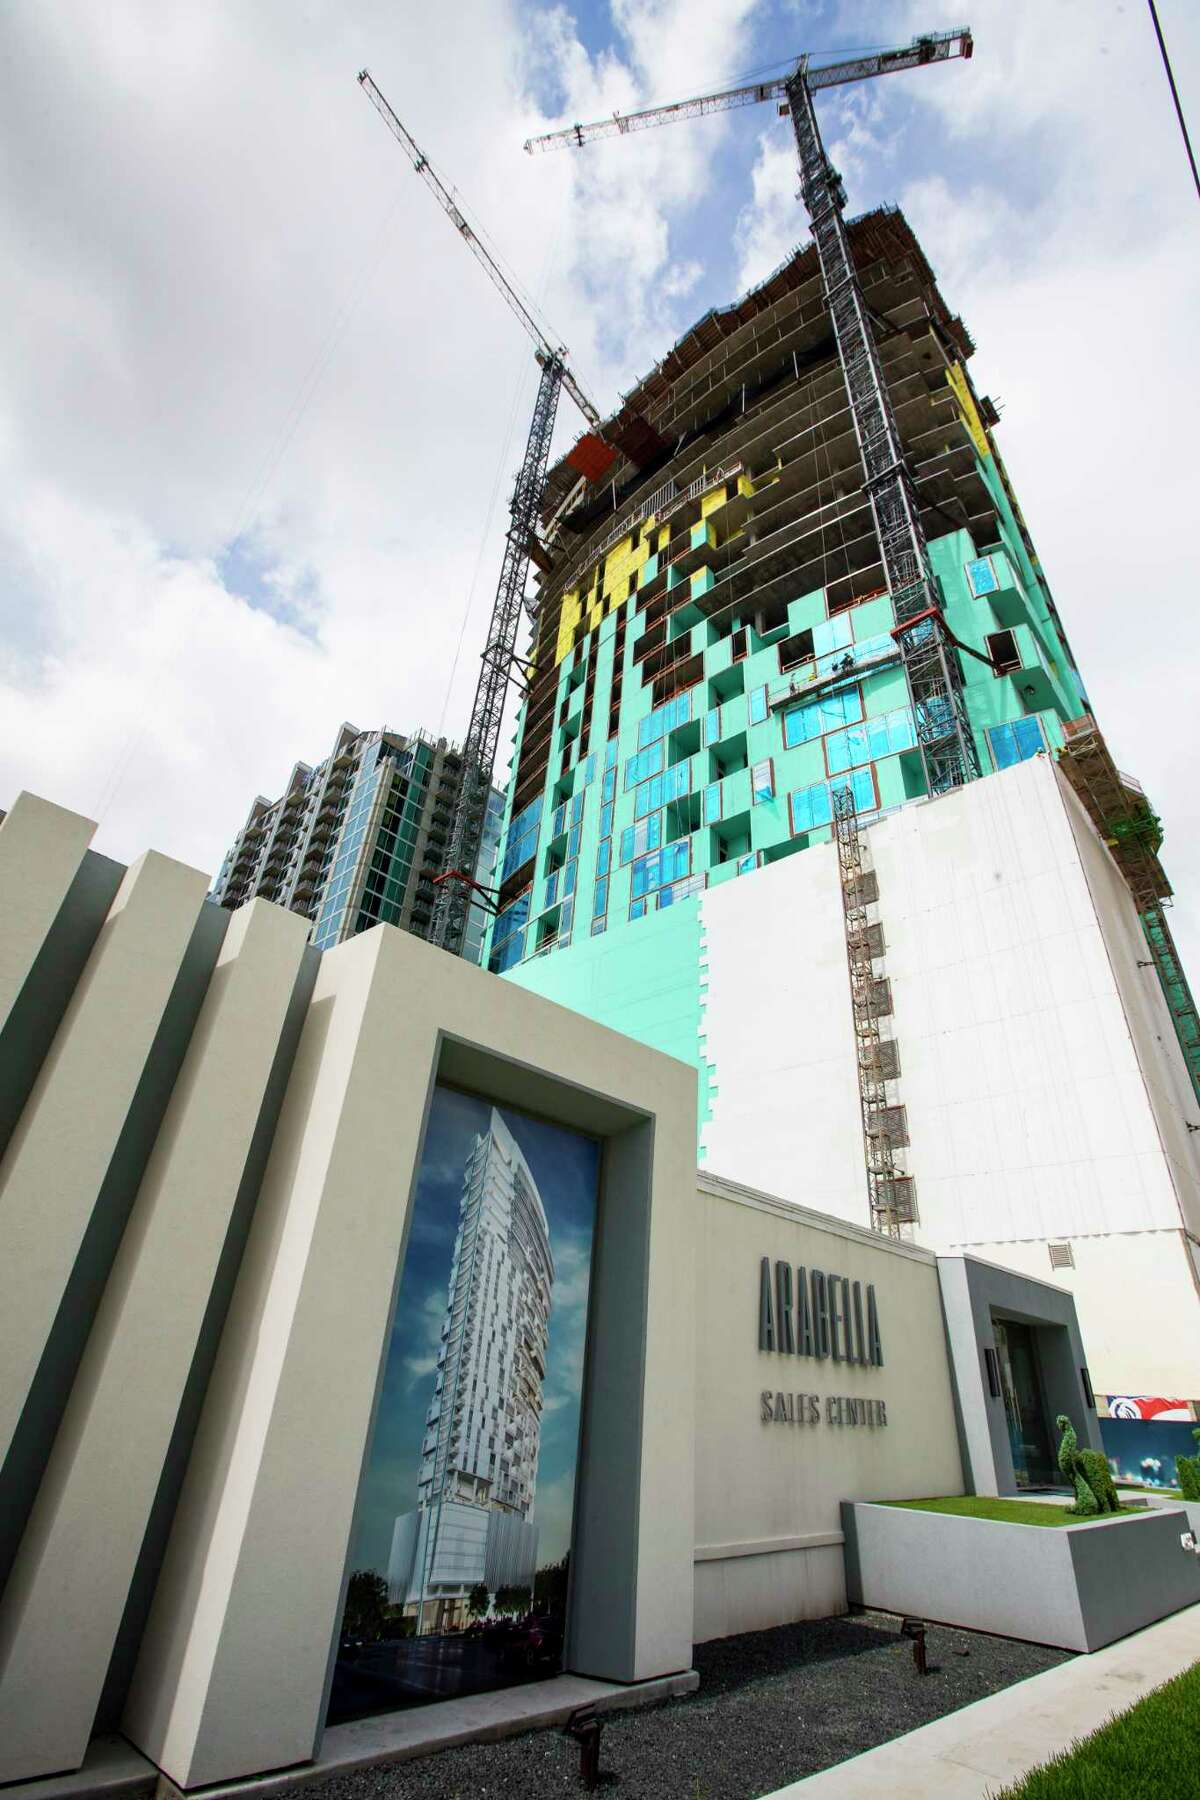 Arabella, condominium tower, is shown on Friday, June 2, 2017, in Houston. Arabella is one of the newest high-rise condominium towers being developed in the Galleria area.